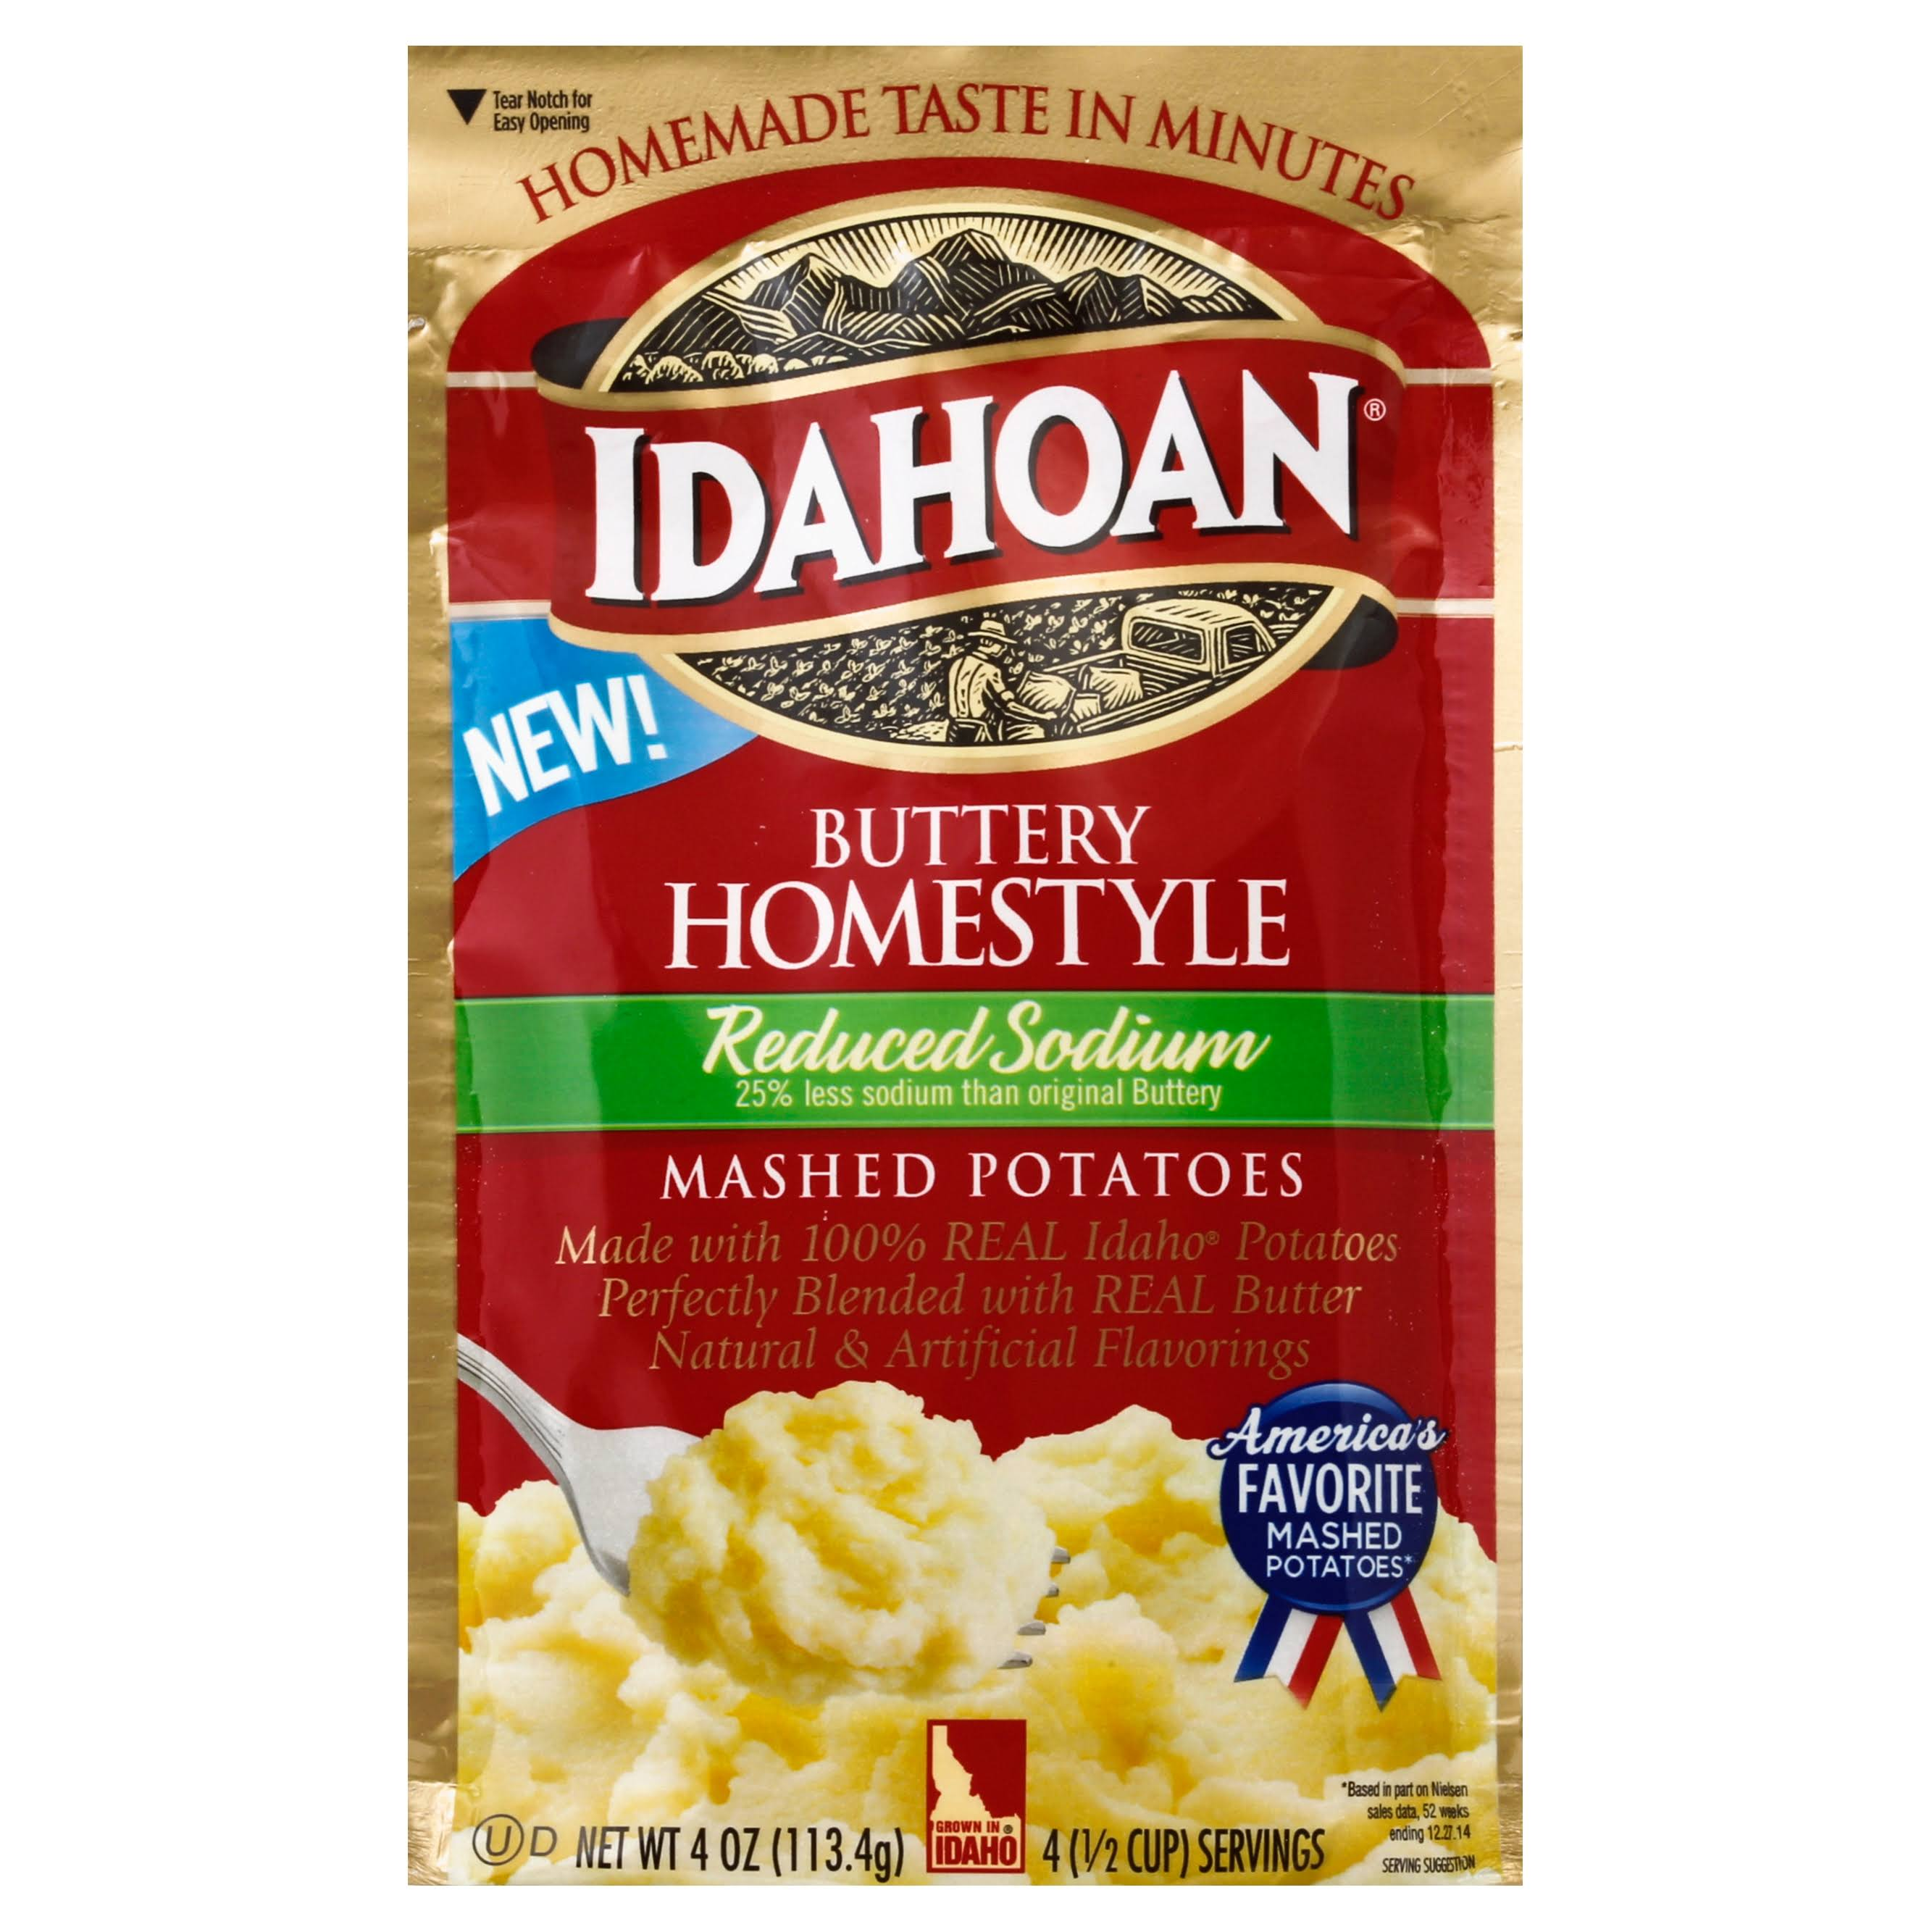 Idahoan Buttery Homestyle Reduced Sodium Instant Mashed Potatoes - 4oz